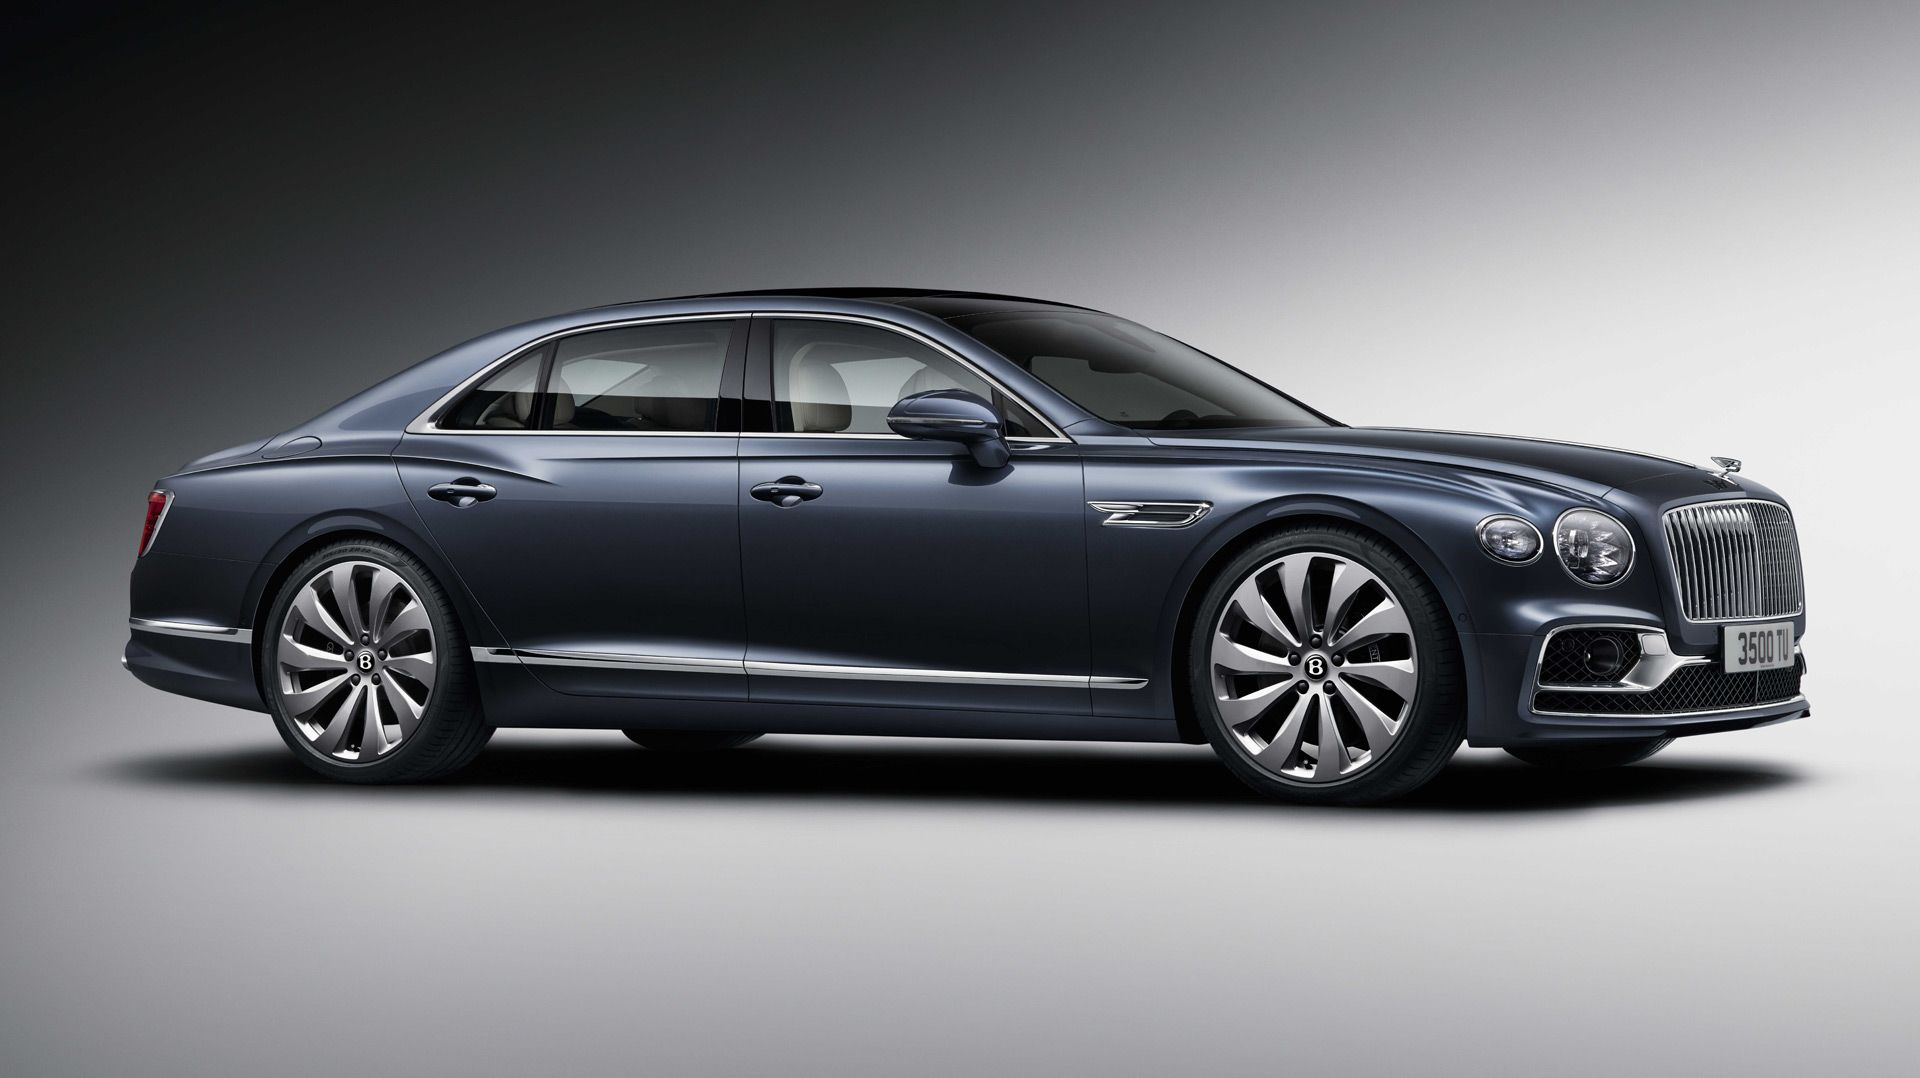 2020 Bentley Flying Spur Is Sporty And Stately In A Single Package Bentley Flying Spur Flying Spur Bentley 4 Door